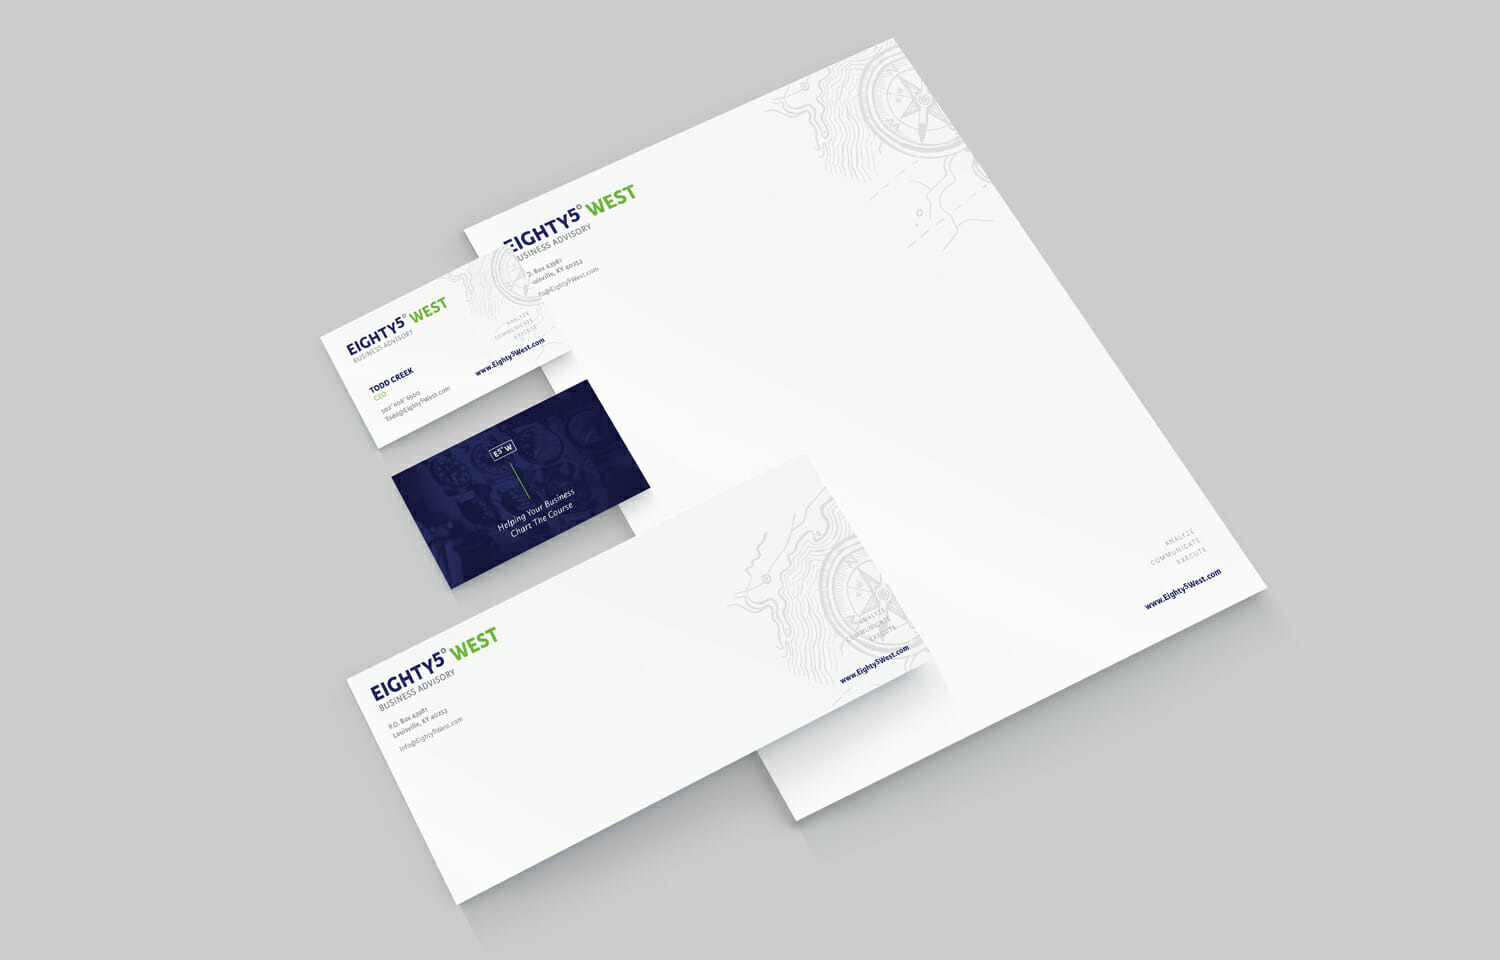 eighty-5-west-letterhead-mockup